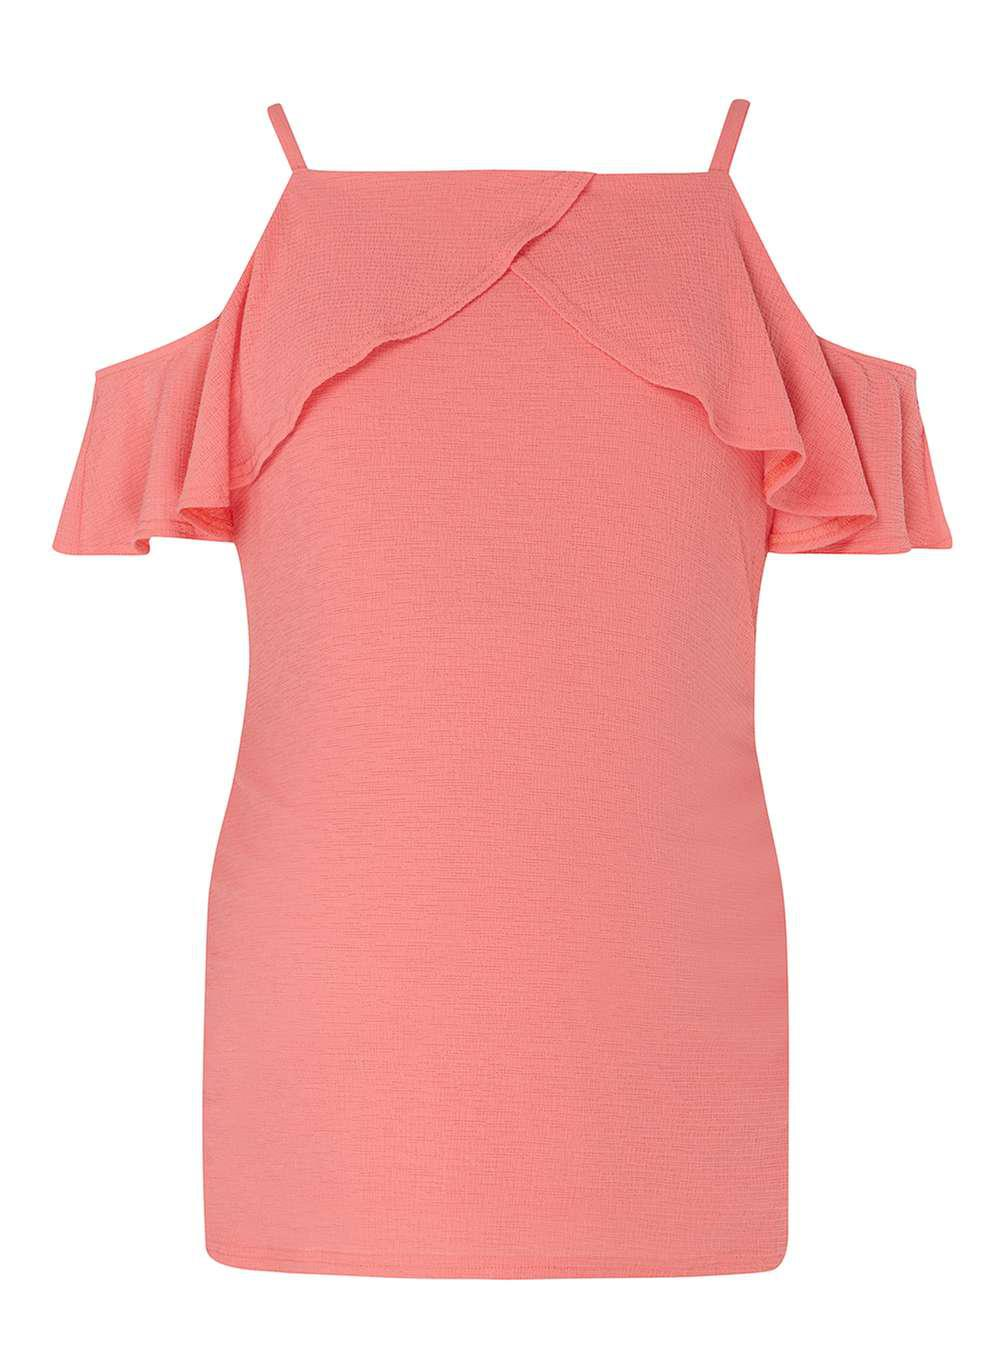 dc9358ae1e4394 Lyst - Dorothy Perkins Maternity Coral Ruffle Tie Cold Shoulder Top ...